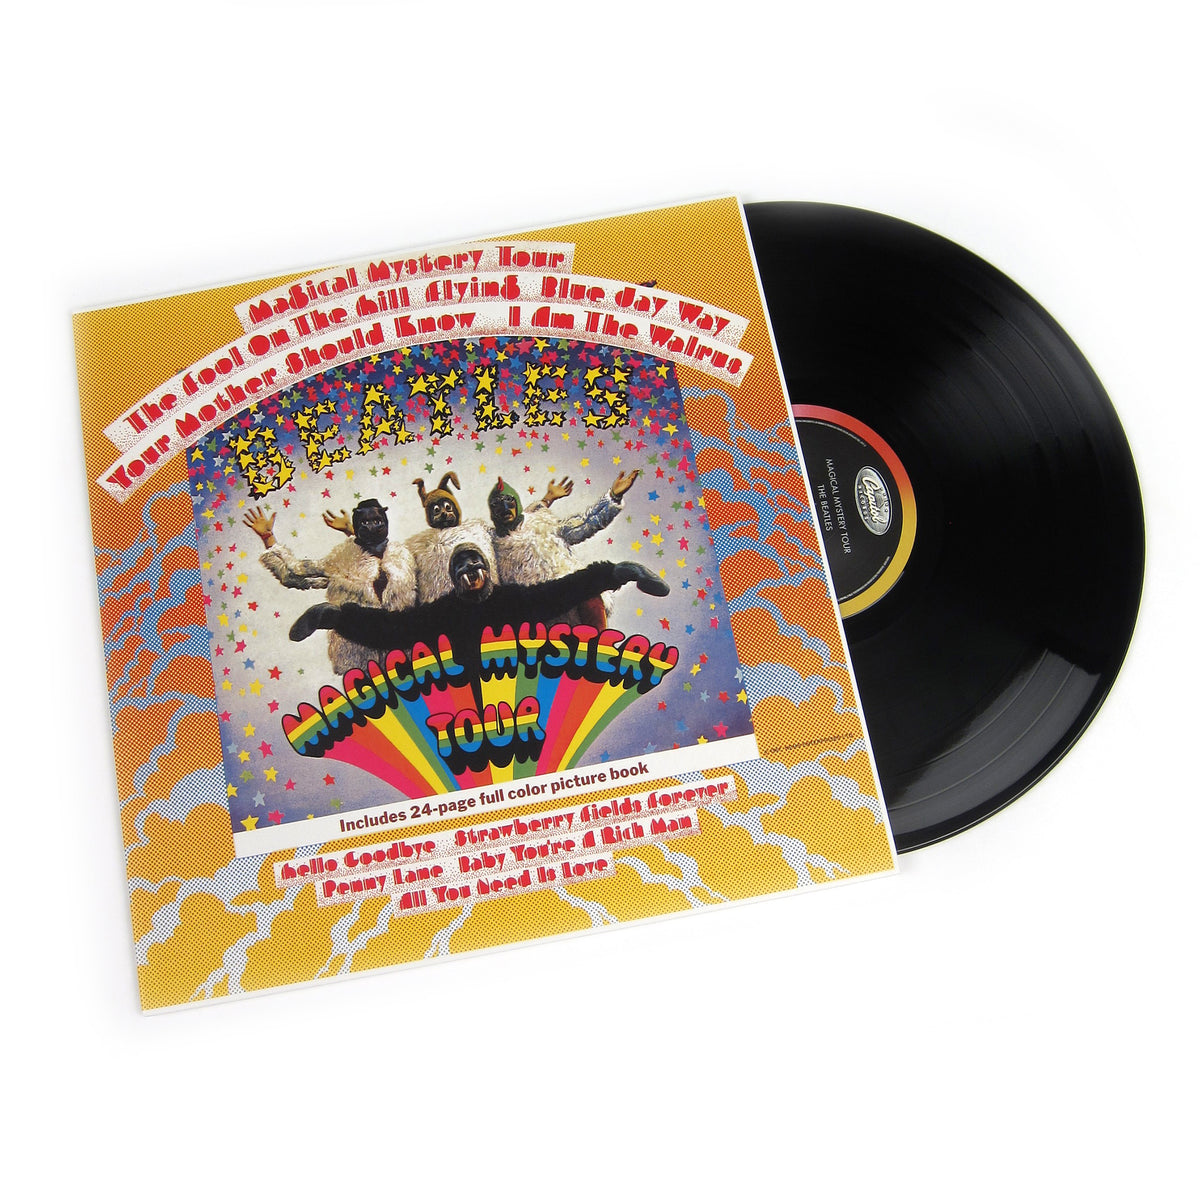 The Beatles: Magical Mystery Tour Vinyl in Mono (180g) Vinyl LP